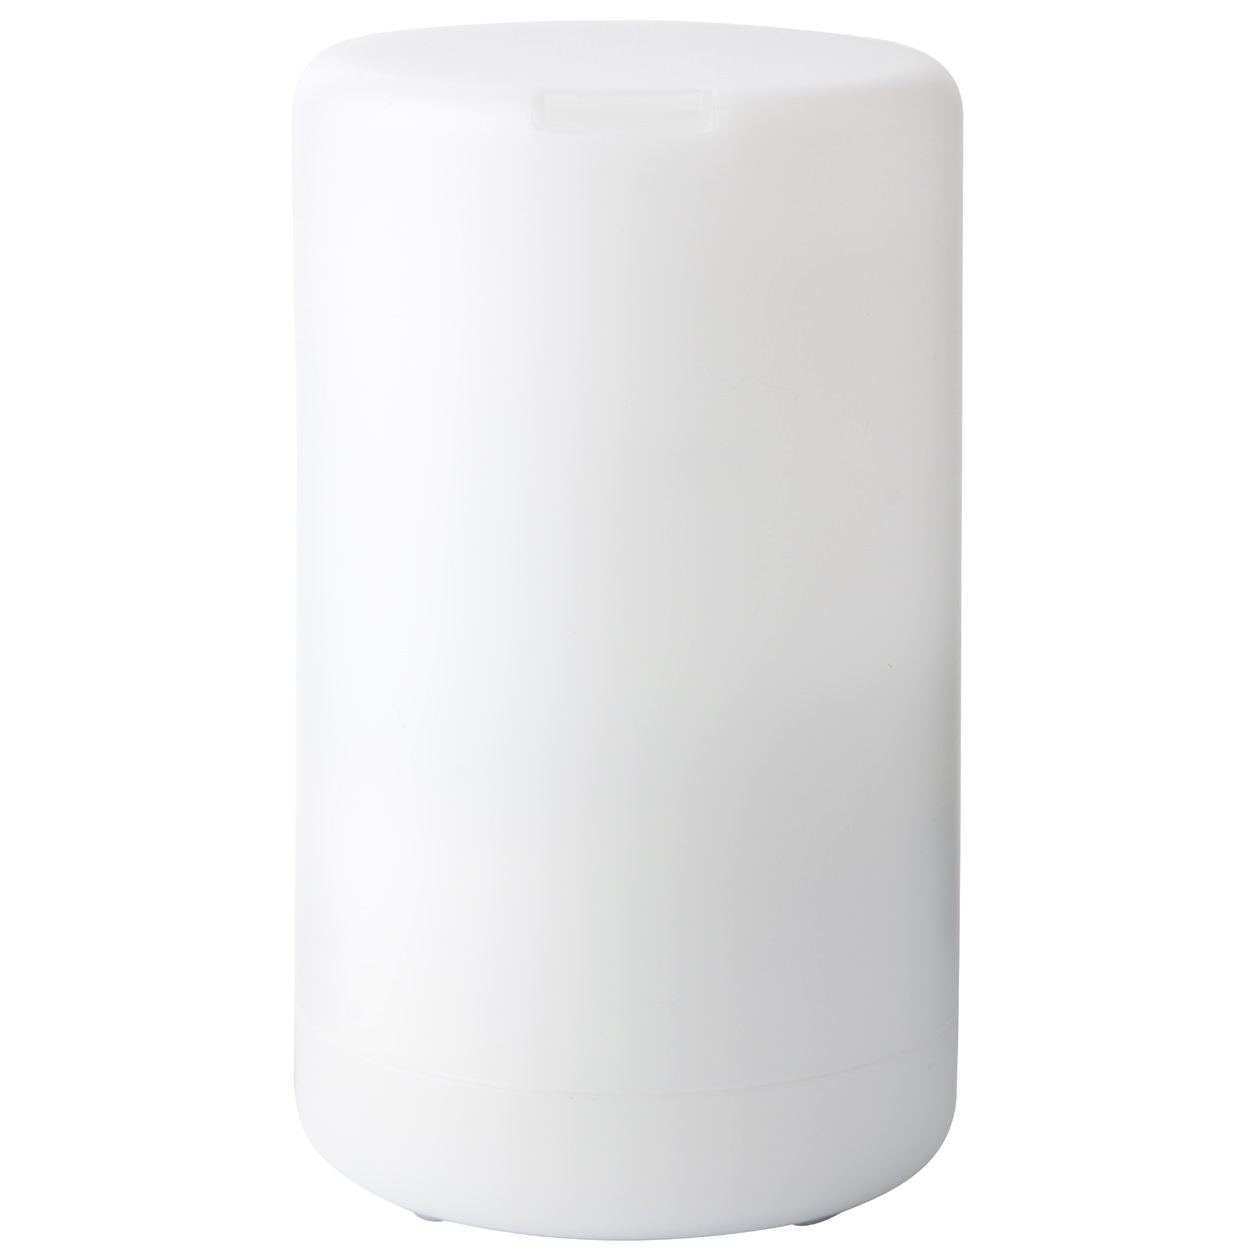 Vellidte Aroma Diffuser | MUJI Online LM-71